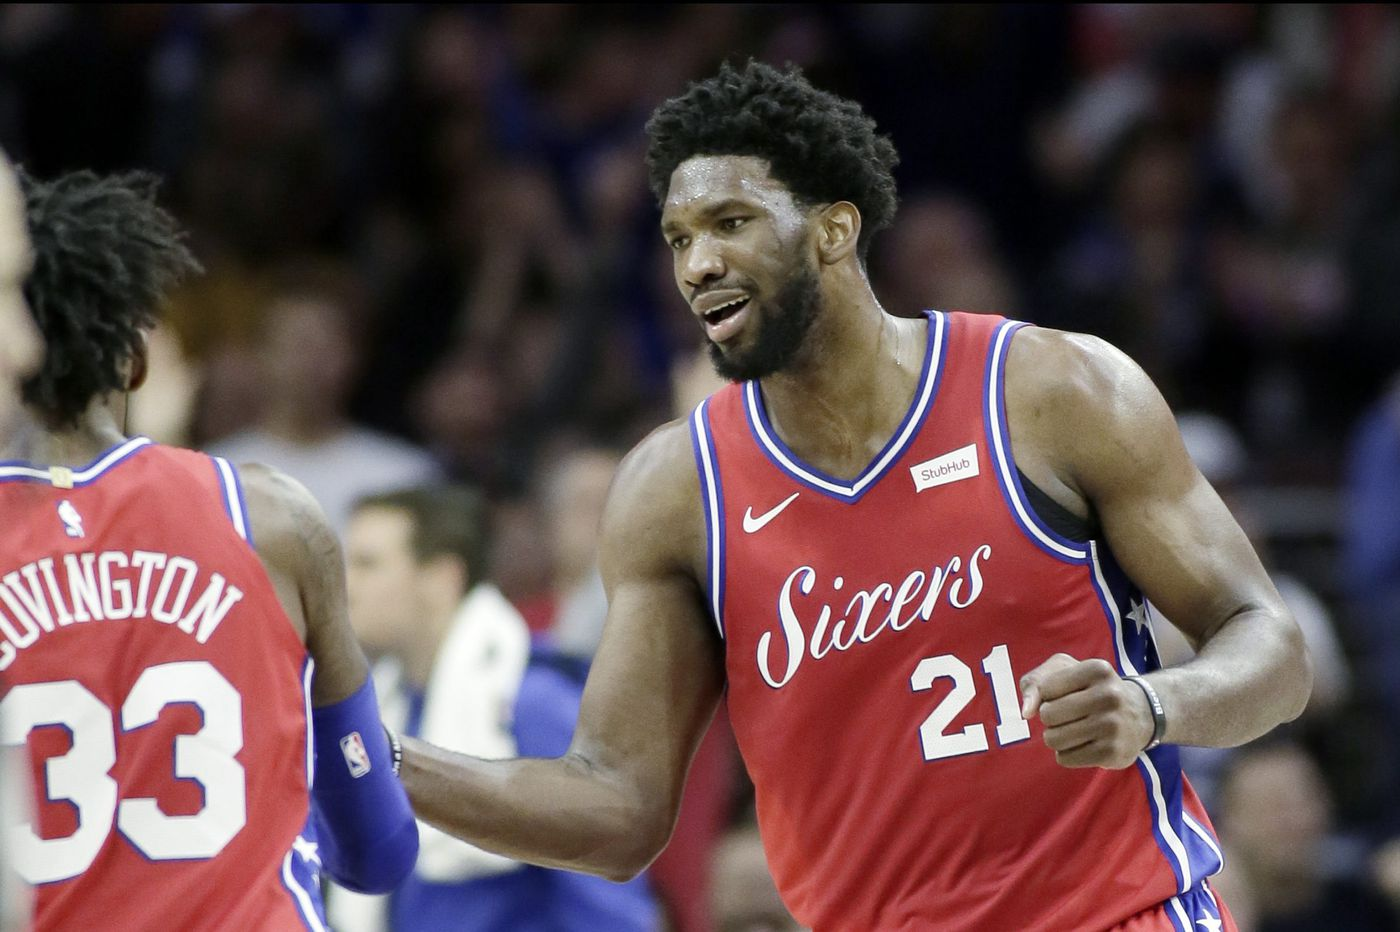 Sixers-Clippers observations, best and worst awards: Joel Embiid's shot-blocking, Landry Shamet's presence, T.J. McConnell's diminished role